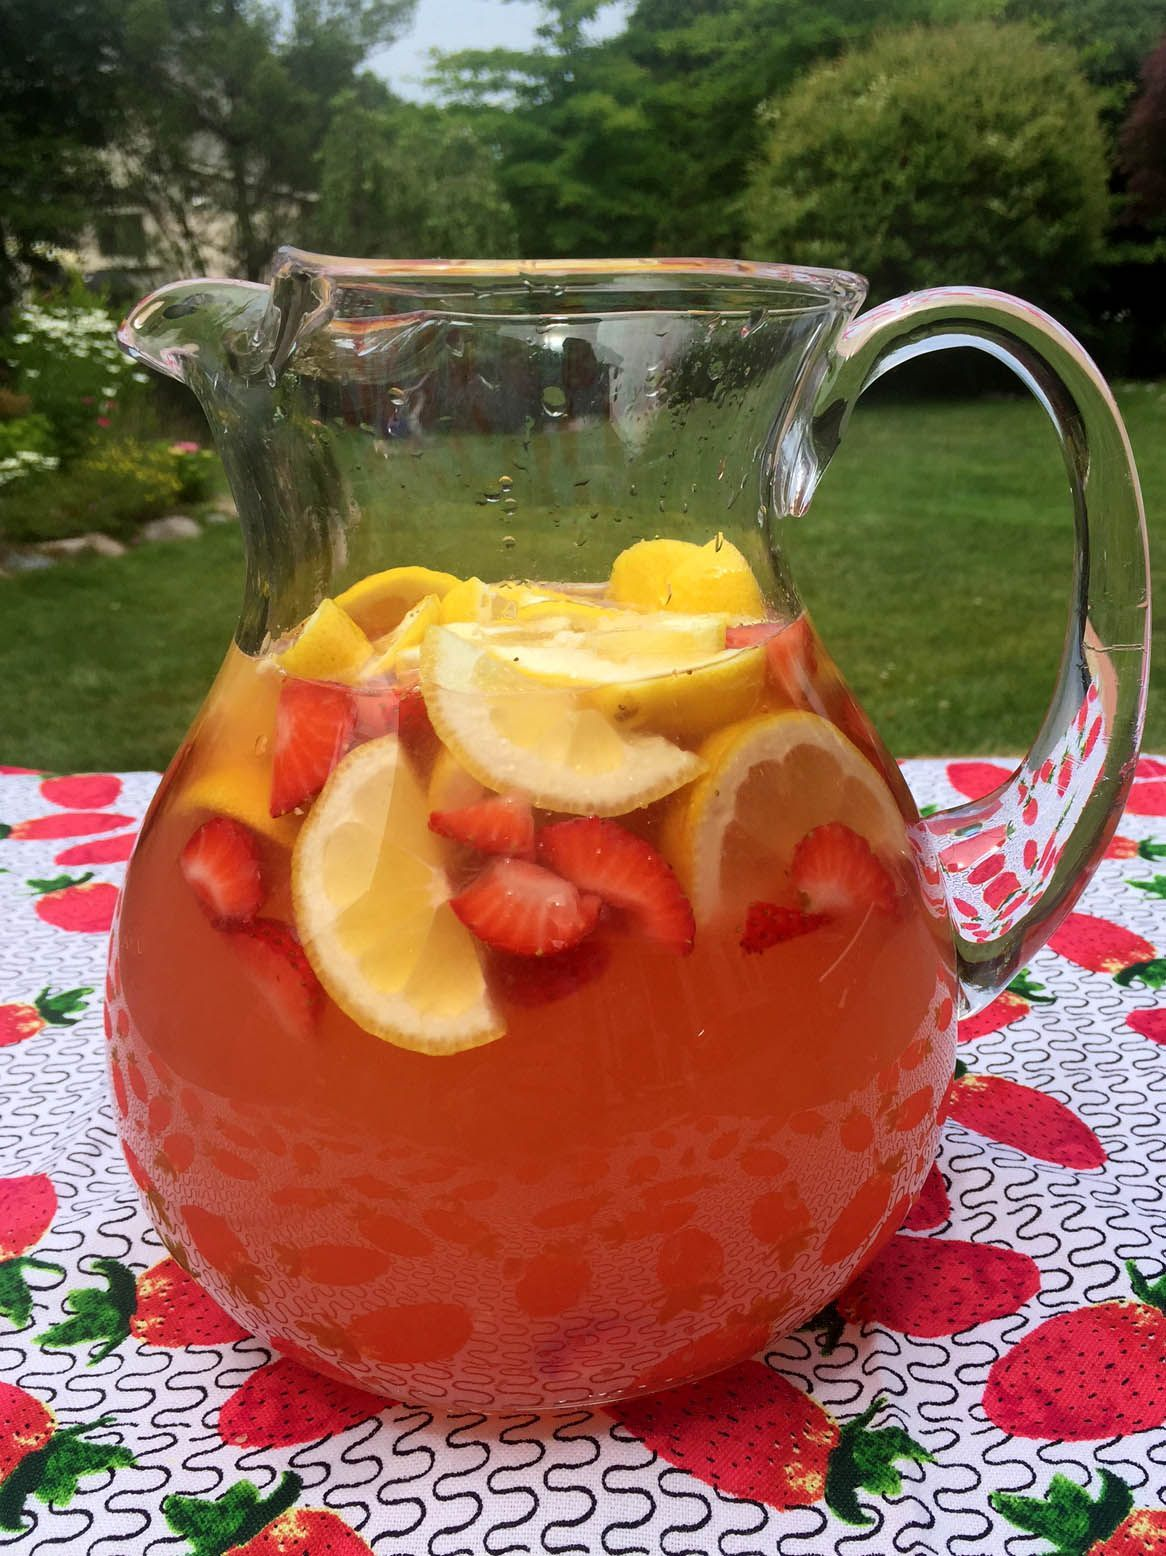 Homemade Strawberry Lemonade Recipe With Freshly Squeezed Lemons & Strawberry Slices